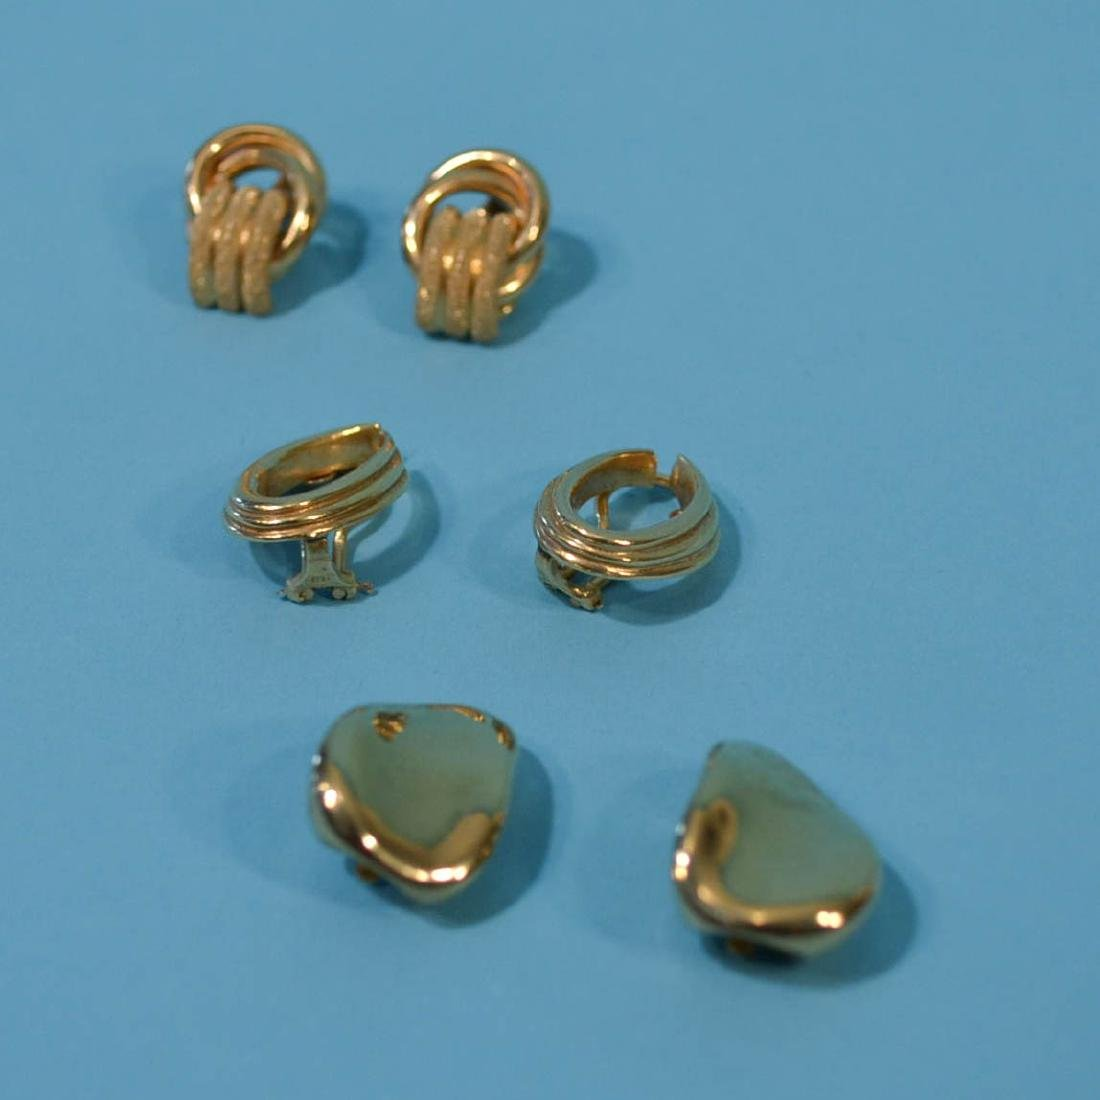 3 Pairs of Classic 14k Gold Earrings